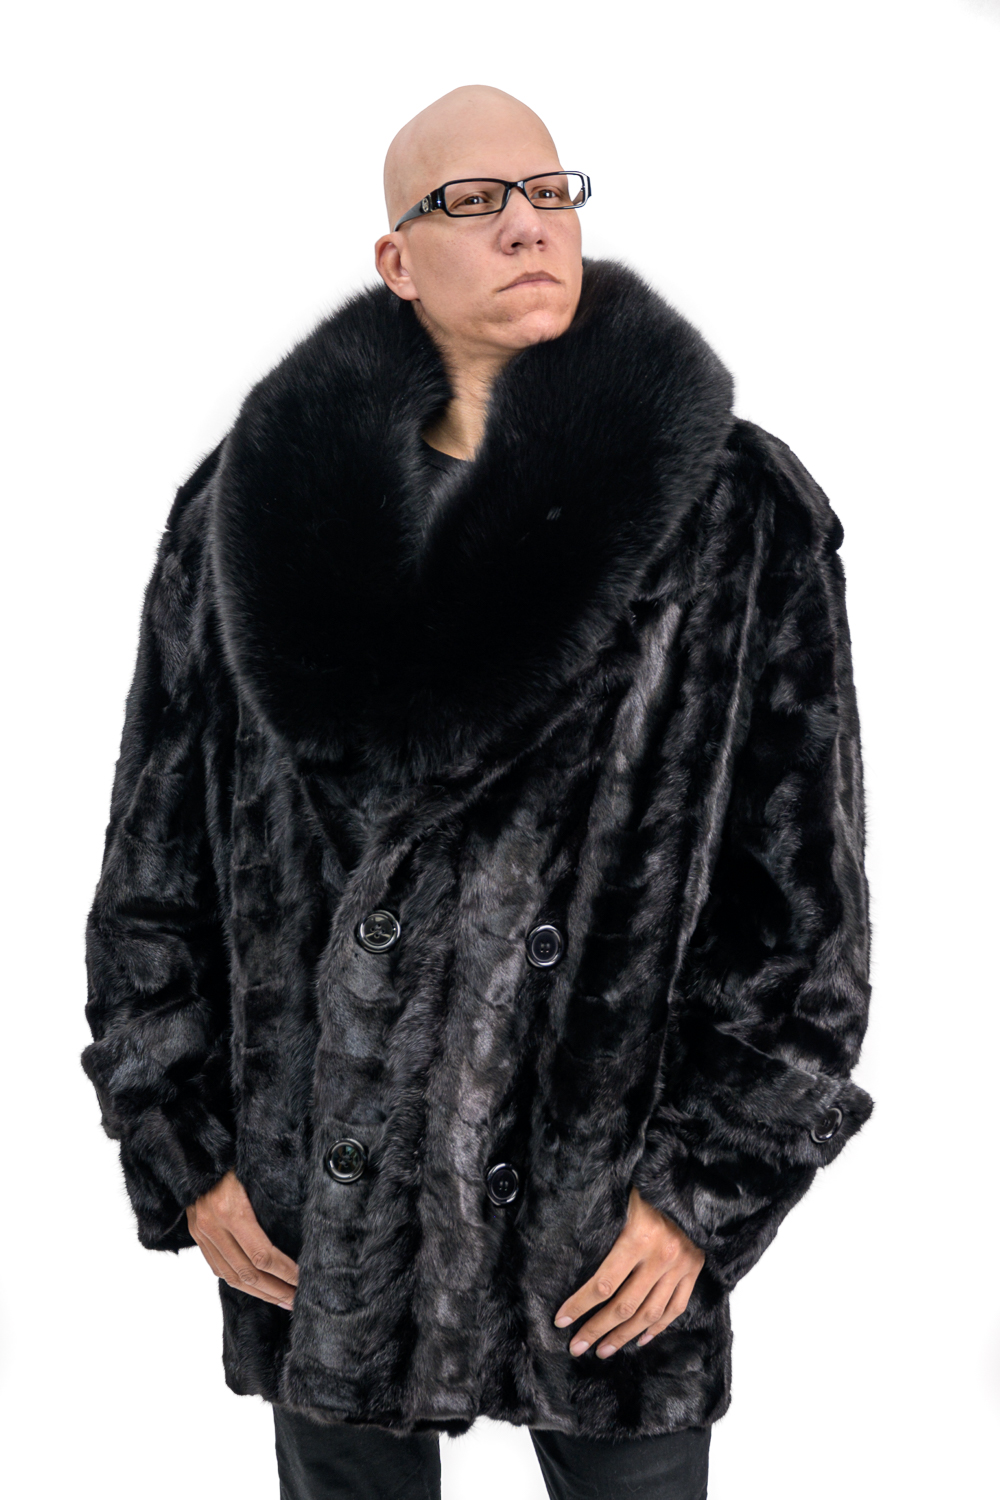 M5 2 Mans Mink Paws Fur Carcoat with Fox